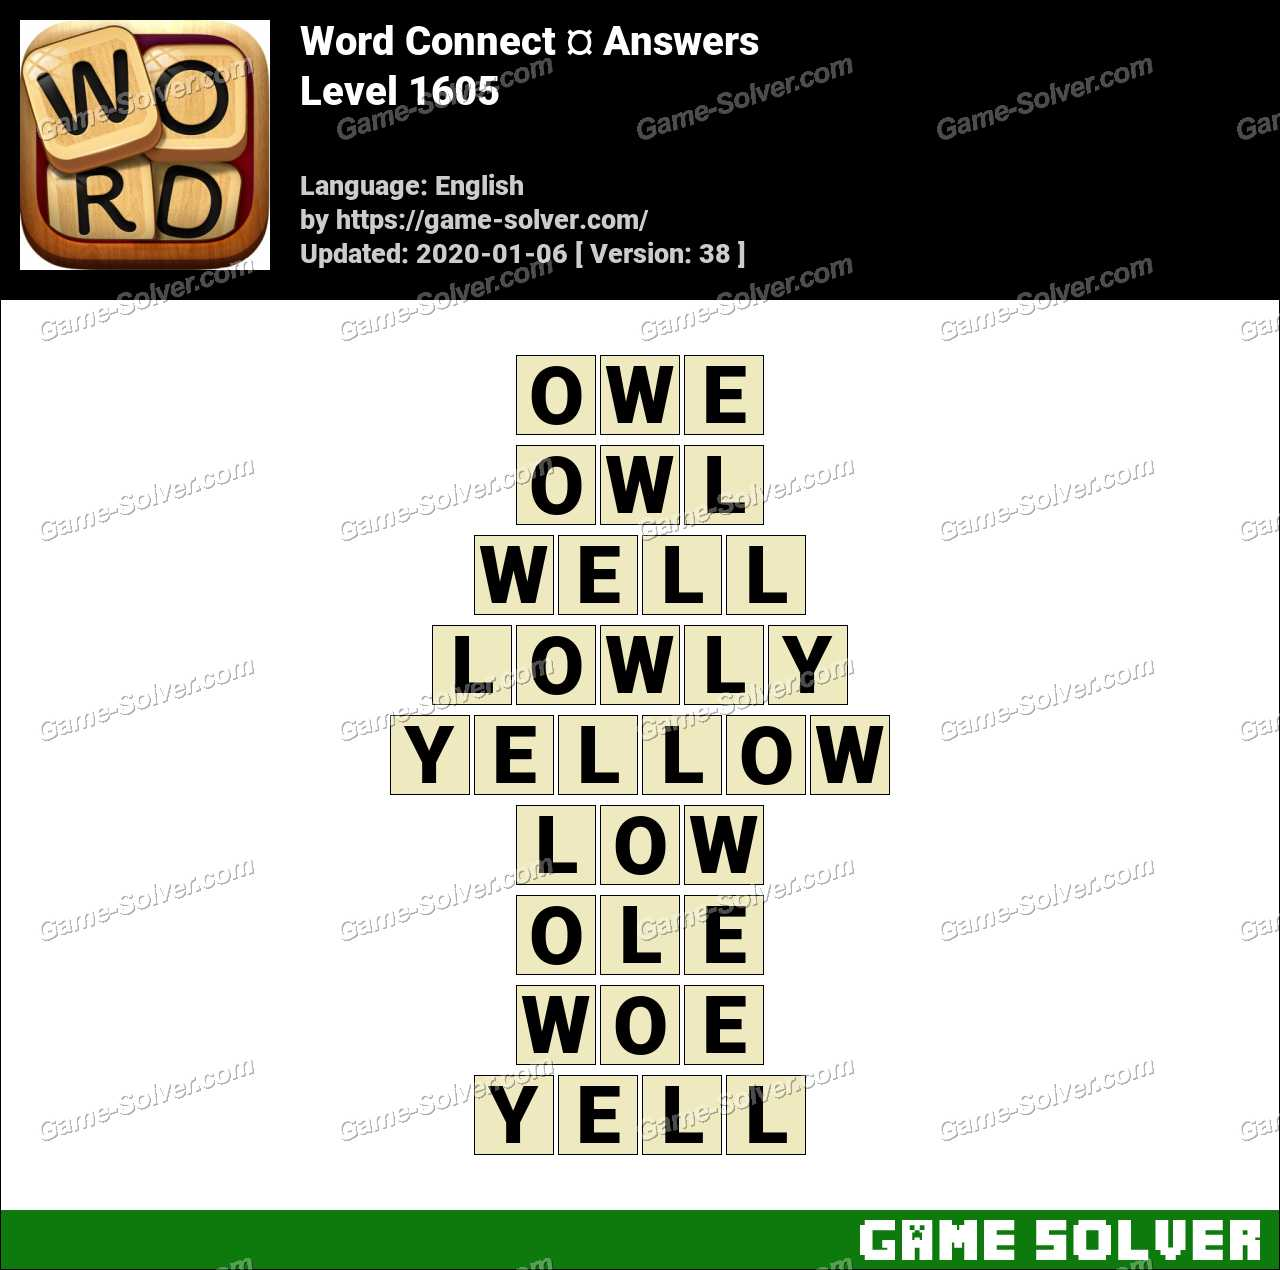 Word Connect Level 1605 Answers